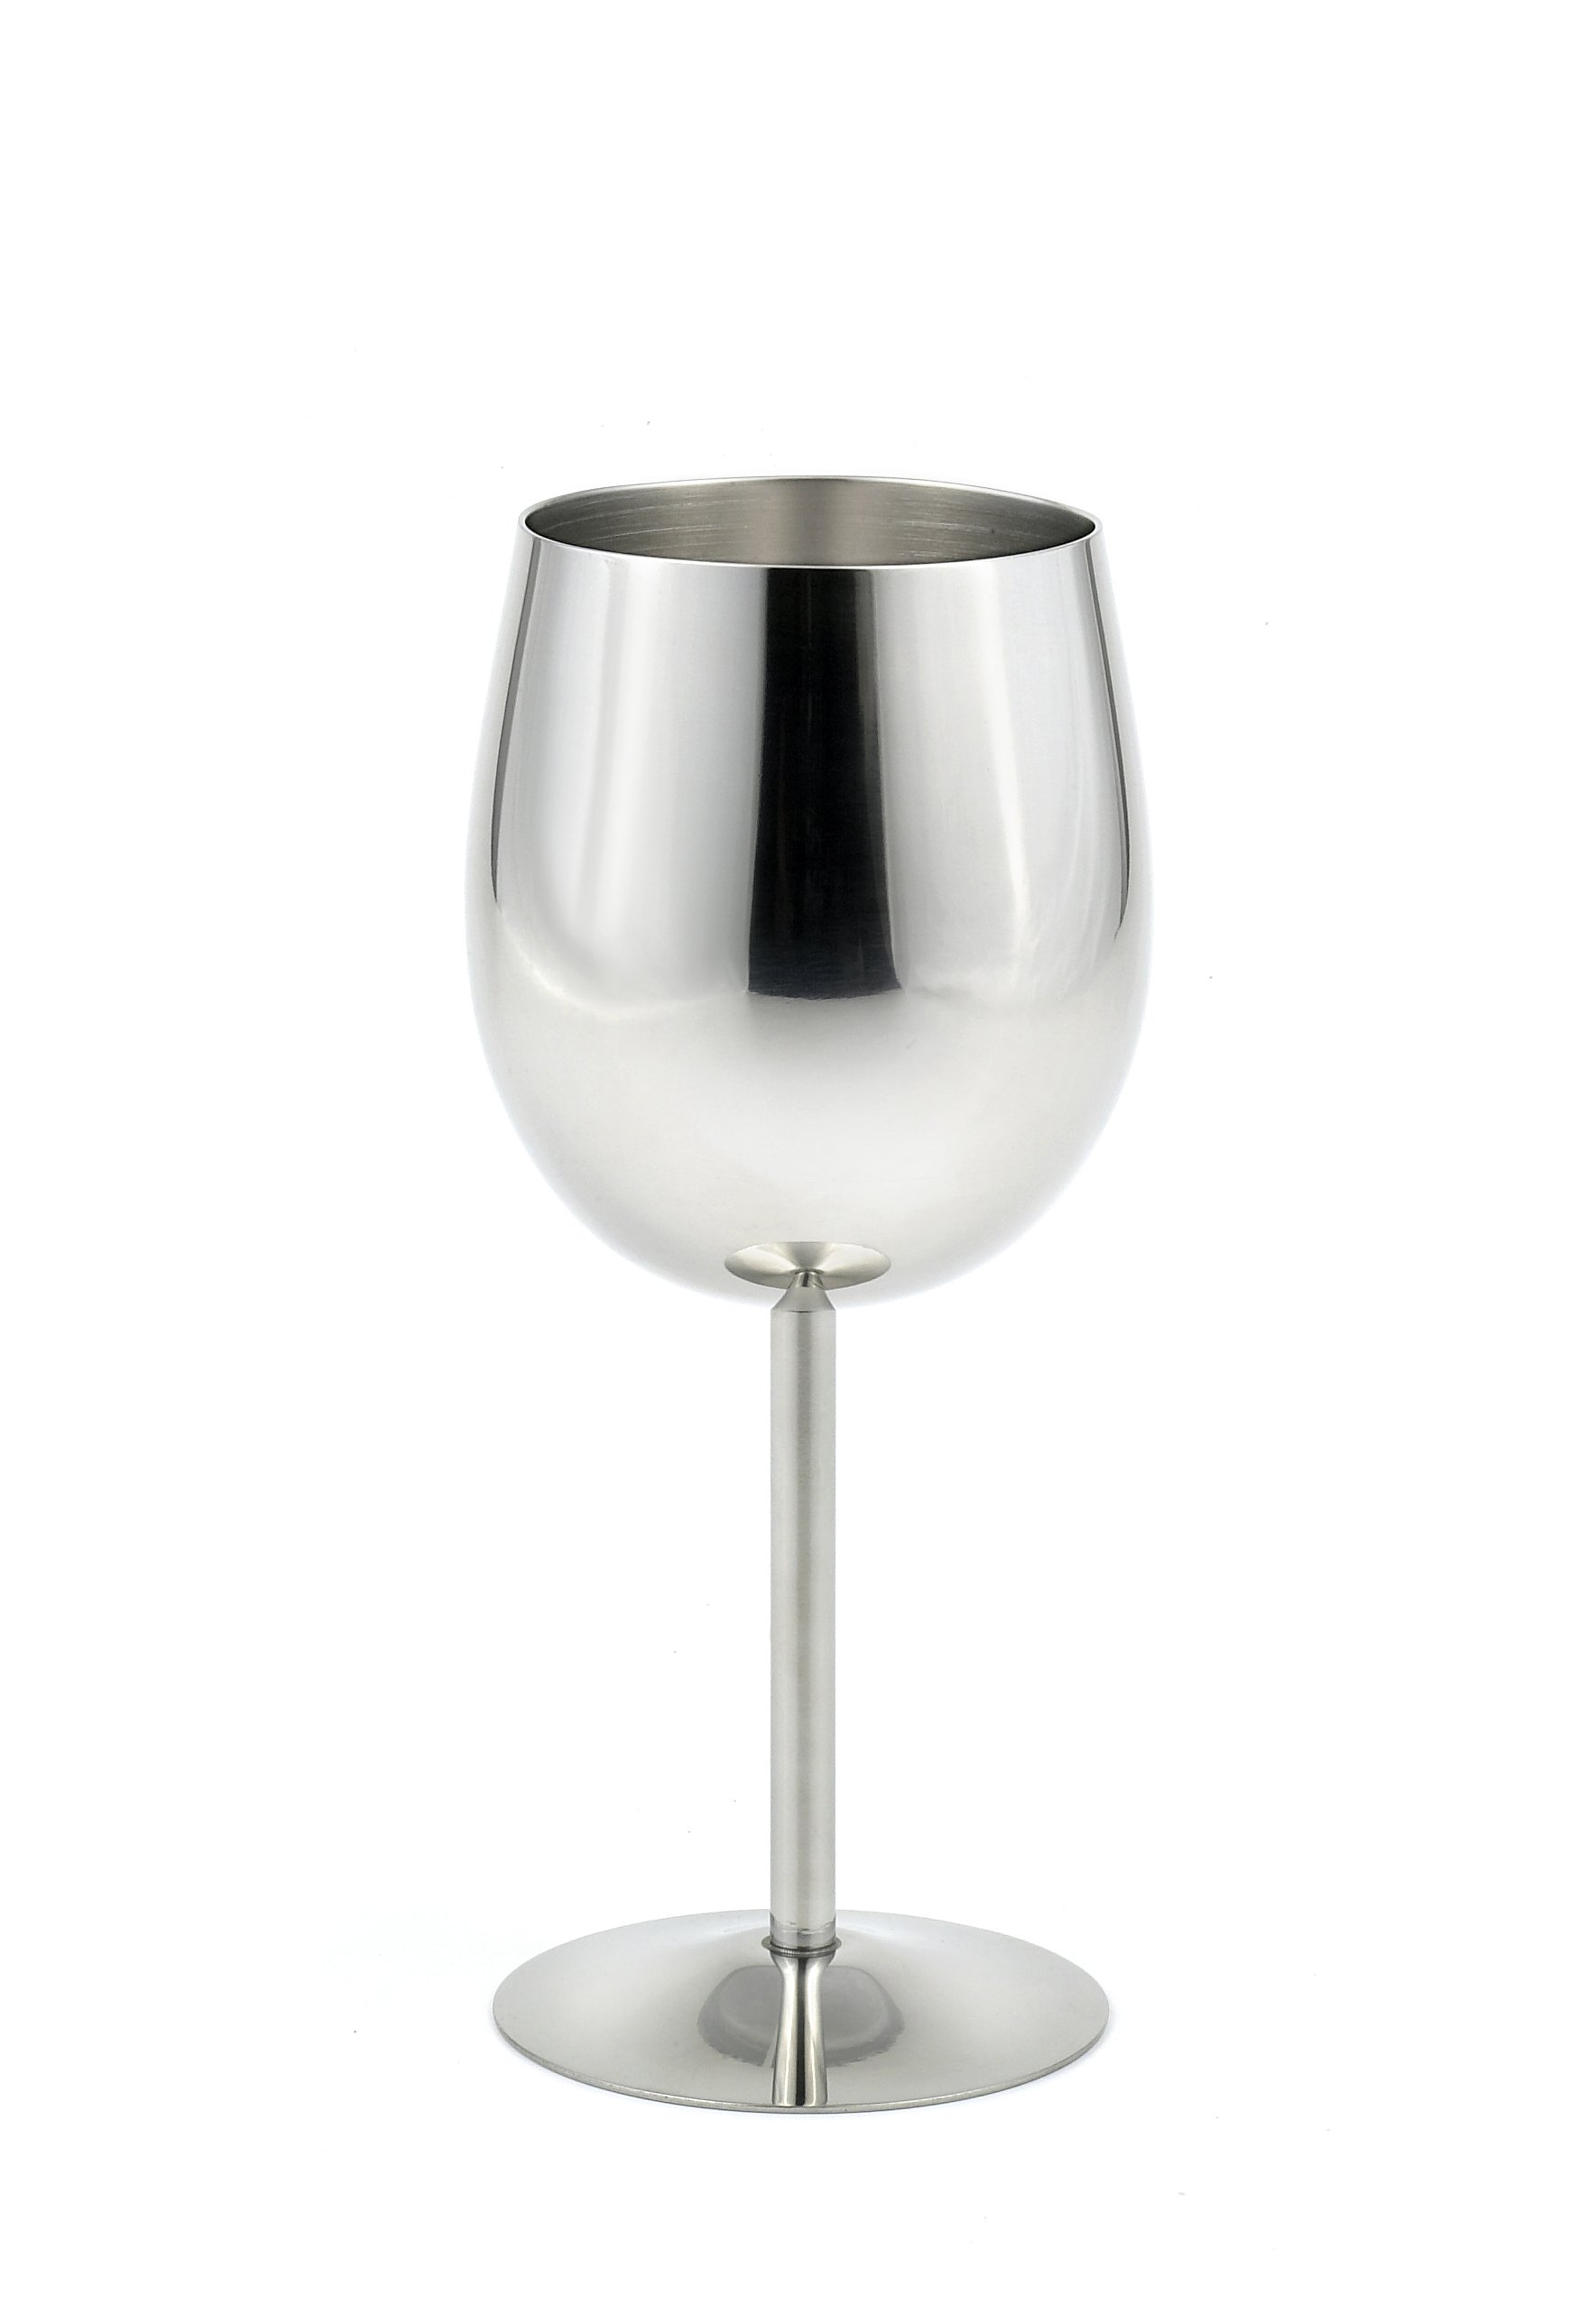 StainlessLUX 73344 Brilliant Stainless Steel Wine Glass / Wine Tasting Goblet - Quality Drinkware for Your Enjoyment